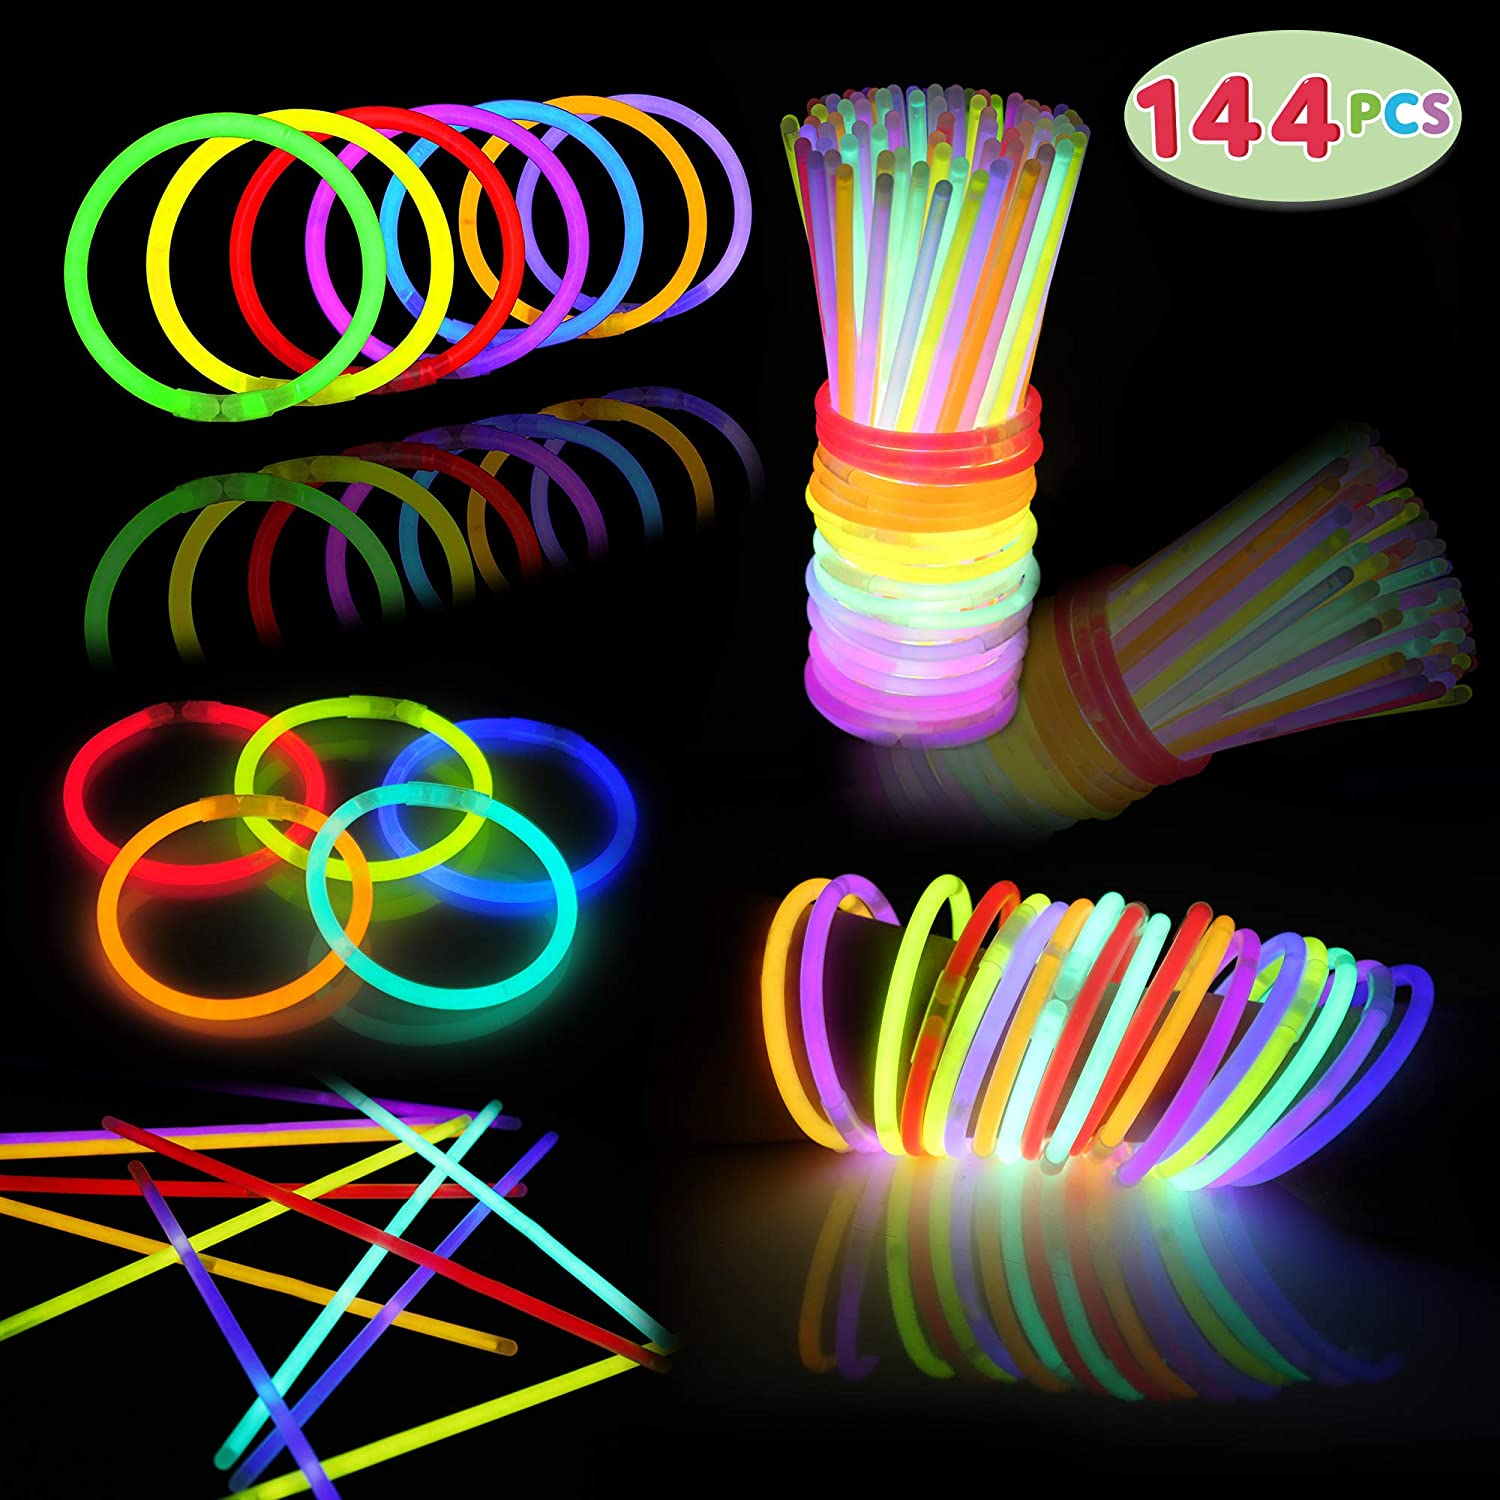 144 PCs Glow Sticks Bulk for Glowstick Party Favors, Colorful Neon Glow in The Dark Necklace & Bracelet Supplies, Birthday Christmas Halloween Football Party Disco Supplies, Camping Accessories